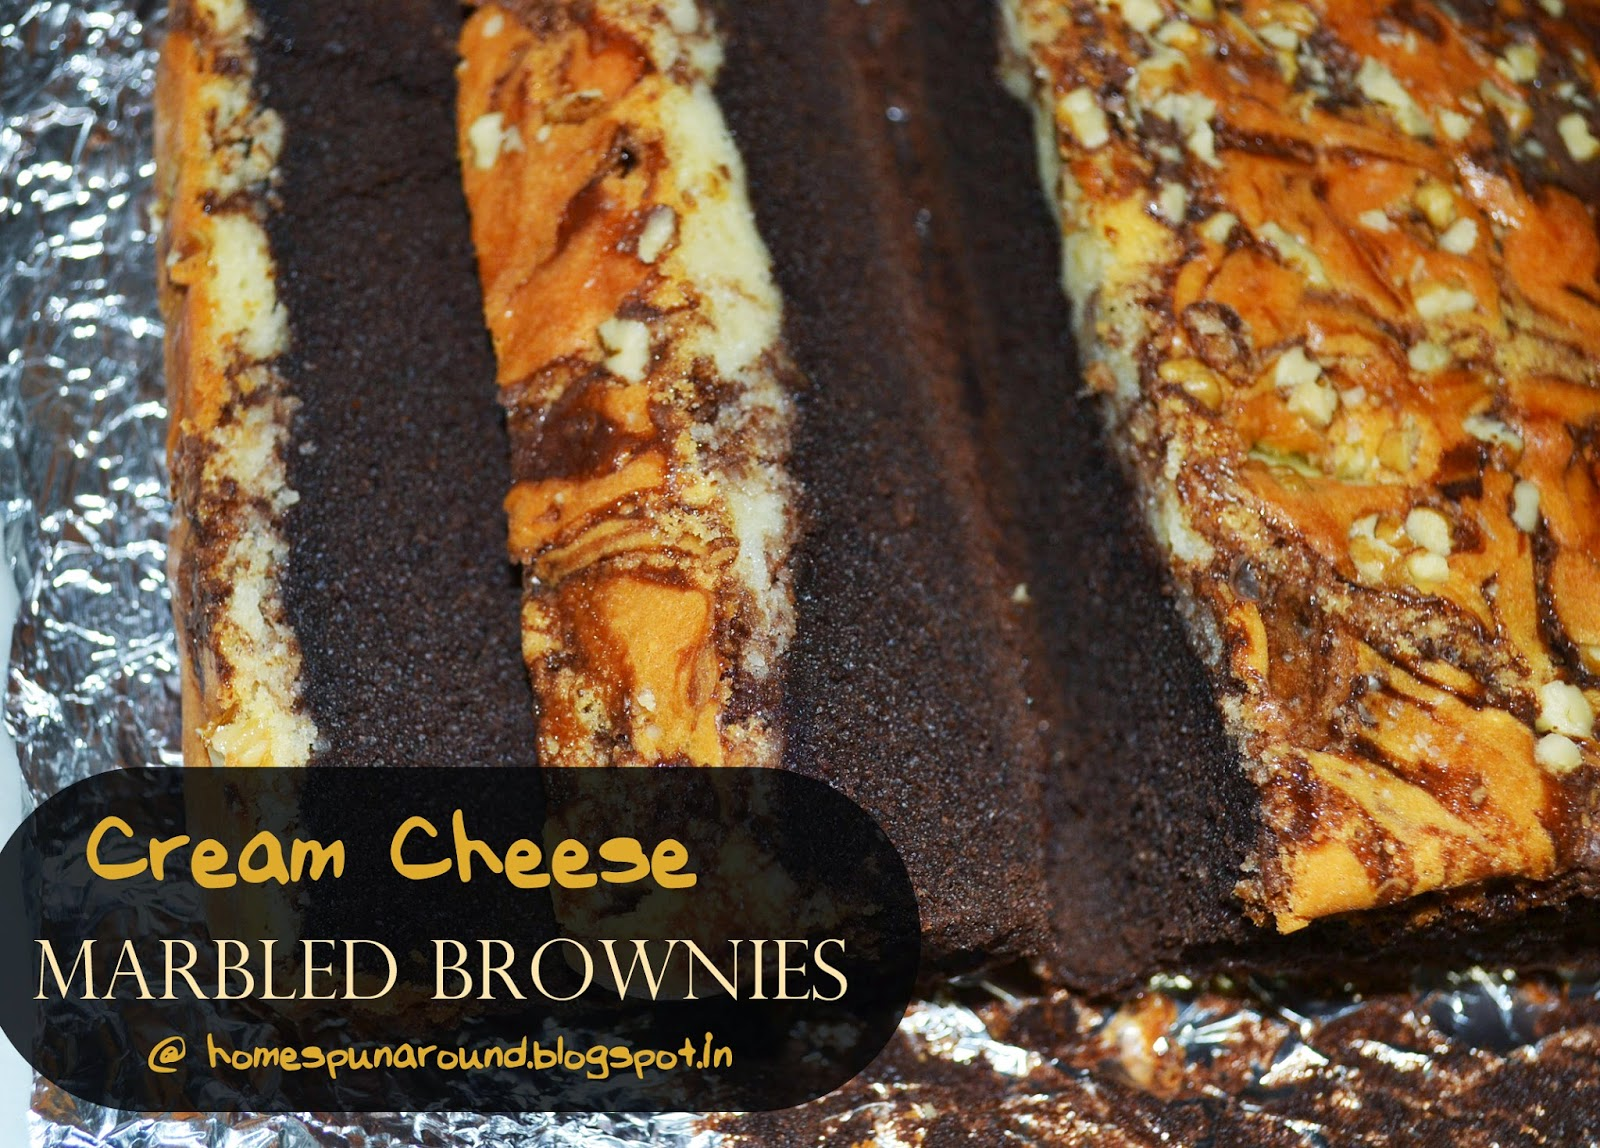 Home-Spun-Around: Tuesday Treat: Cream Cheese Marbled Brownies